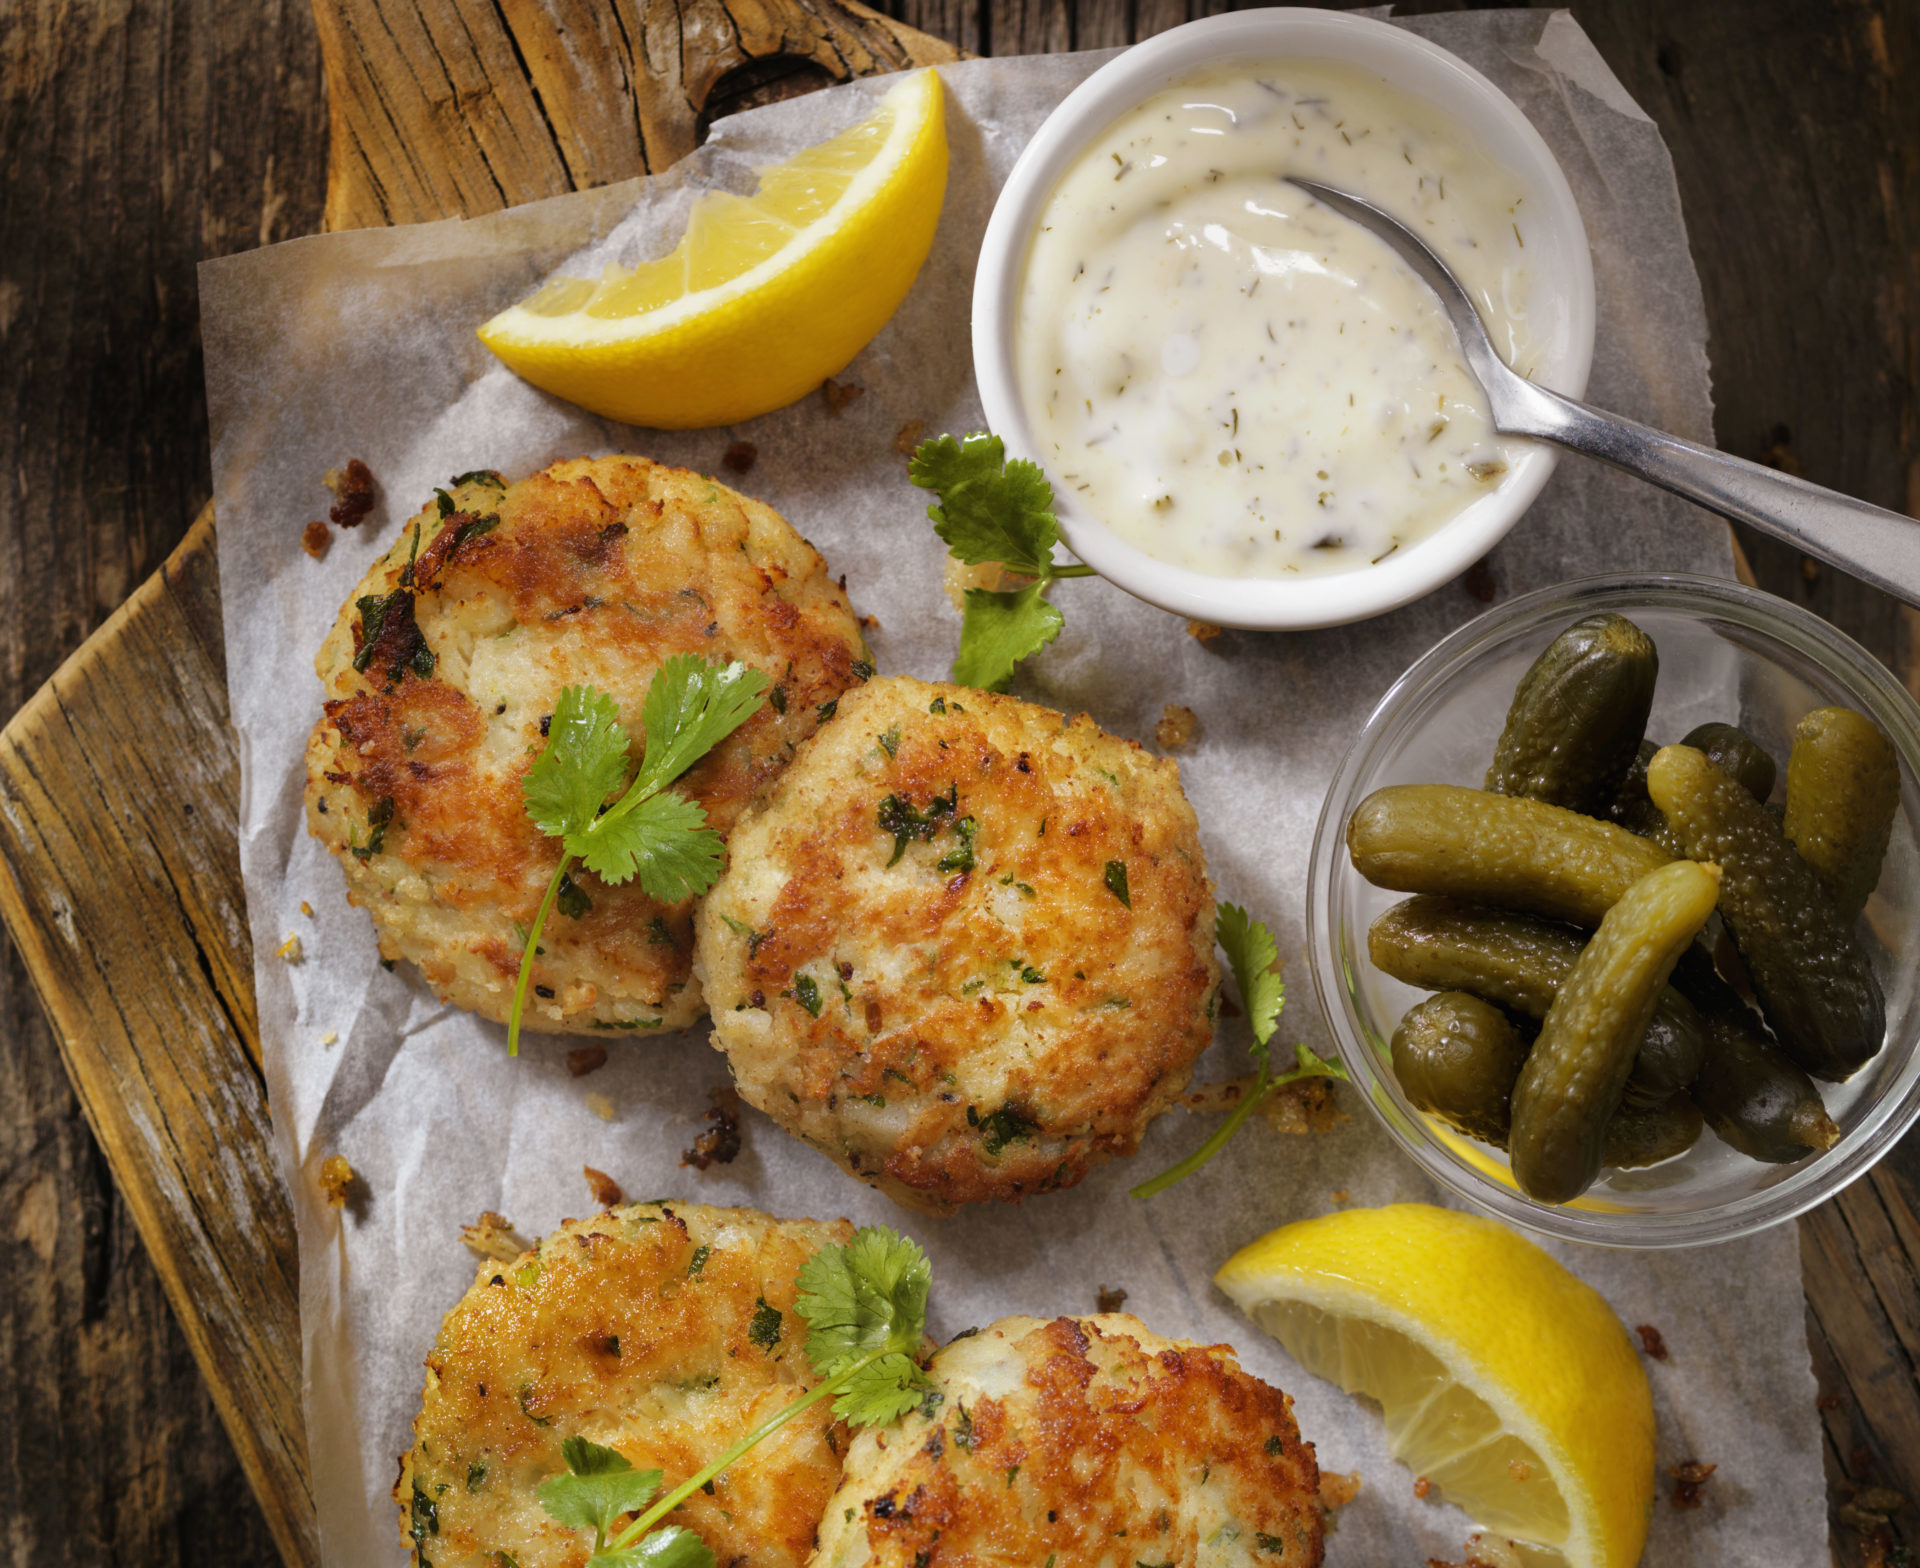 Fish Cakes with lemon and tartar sauce